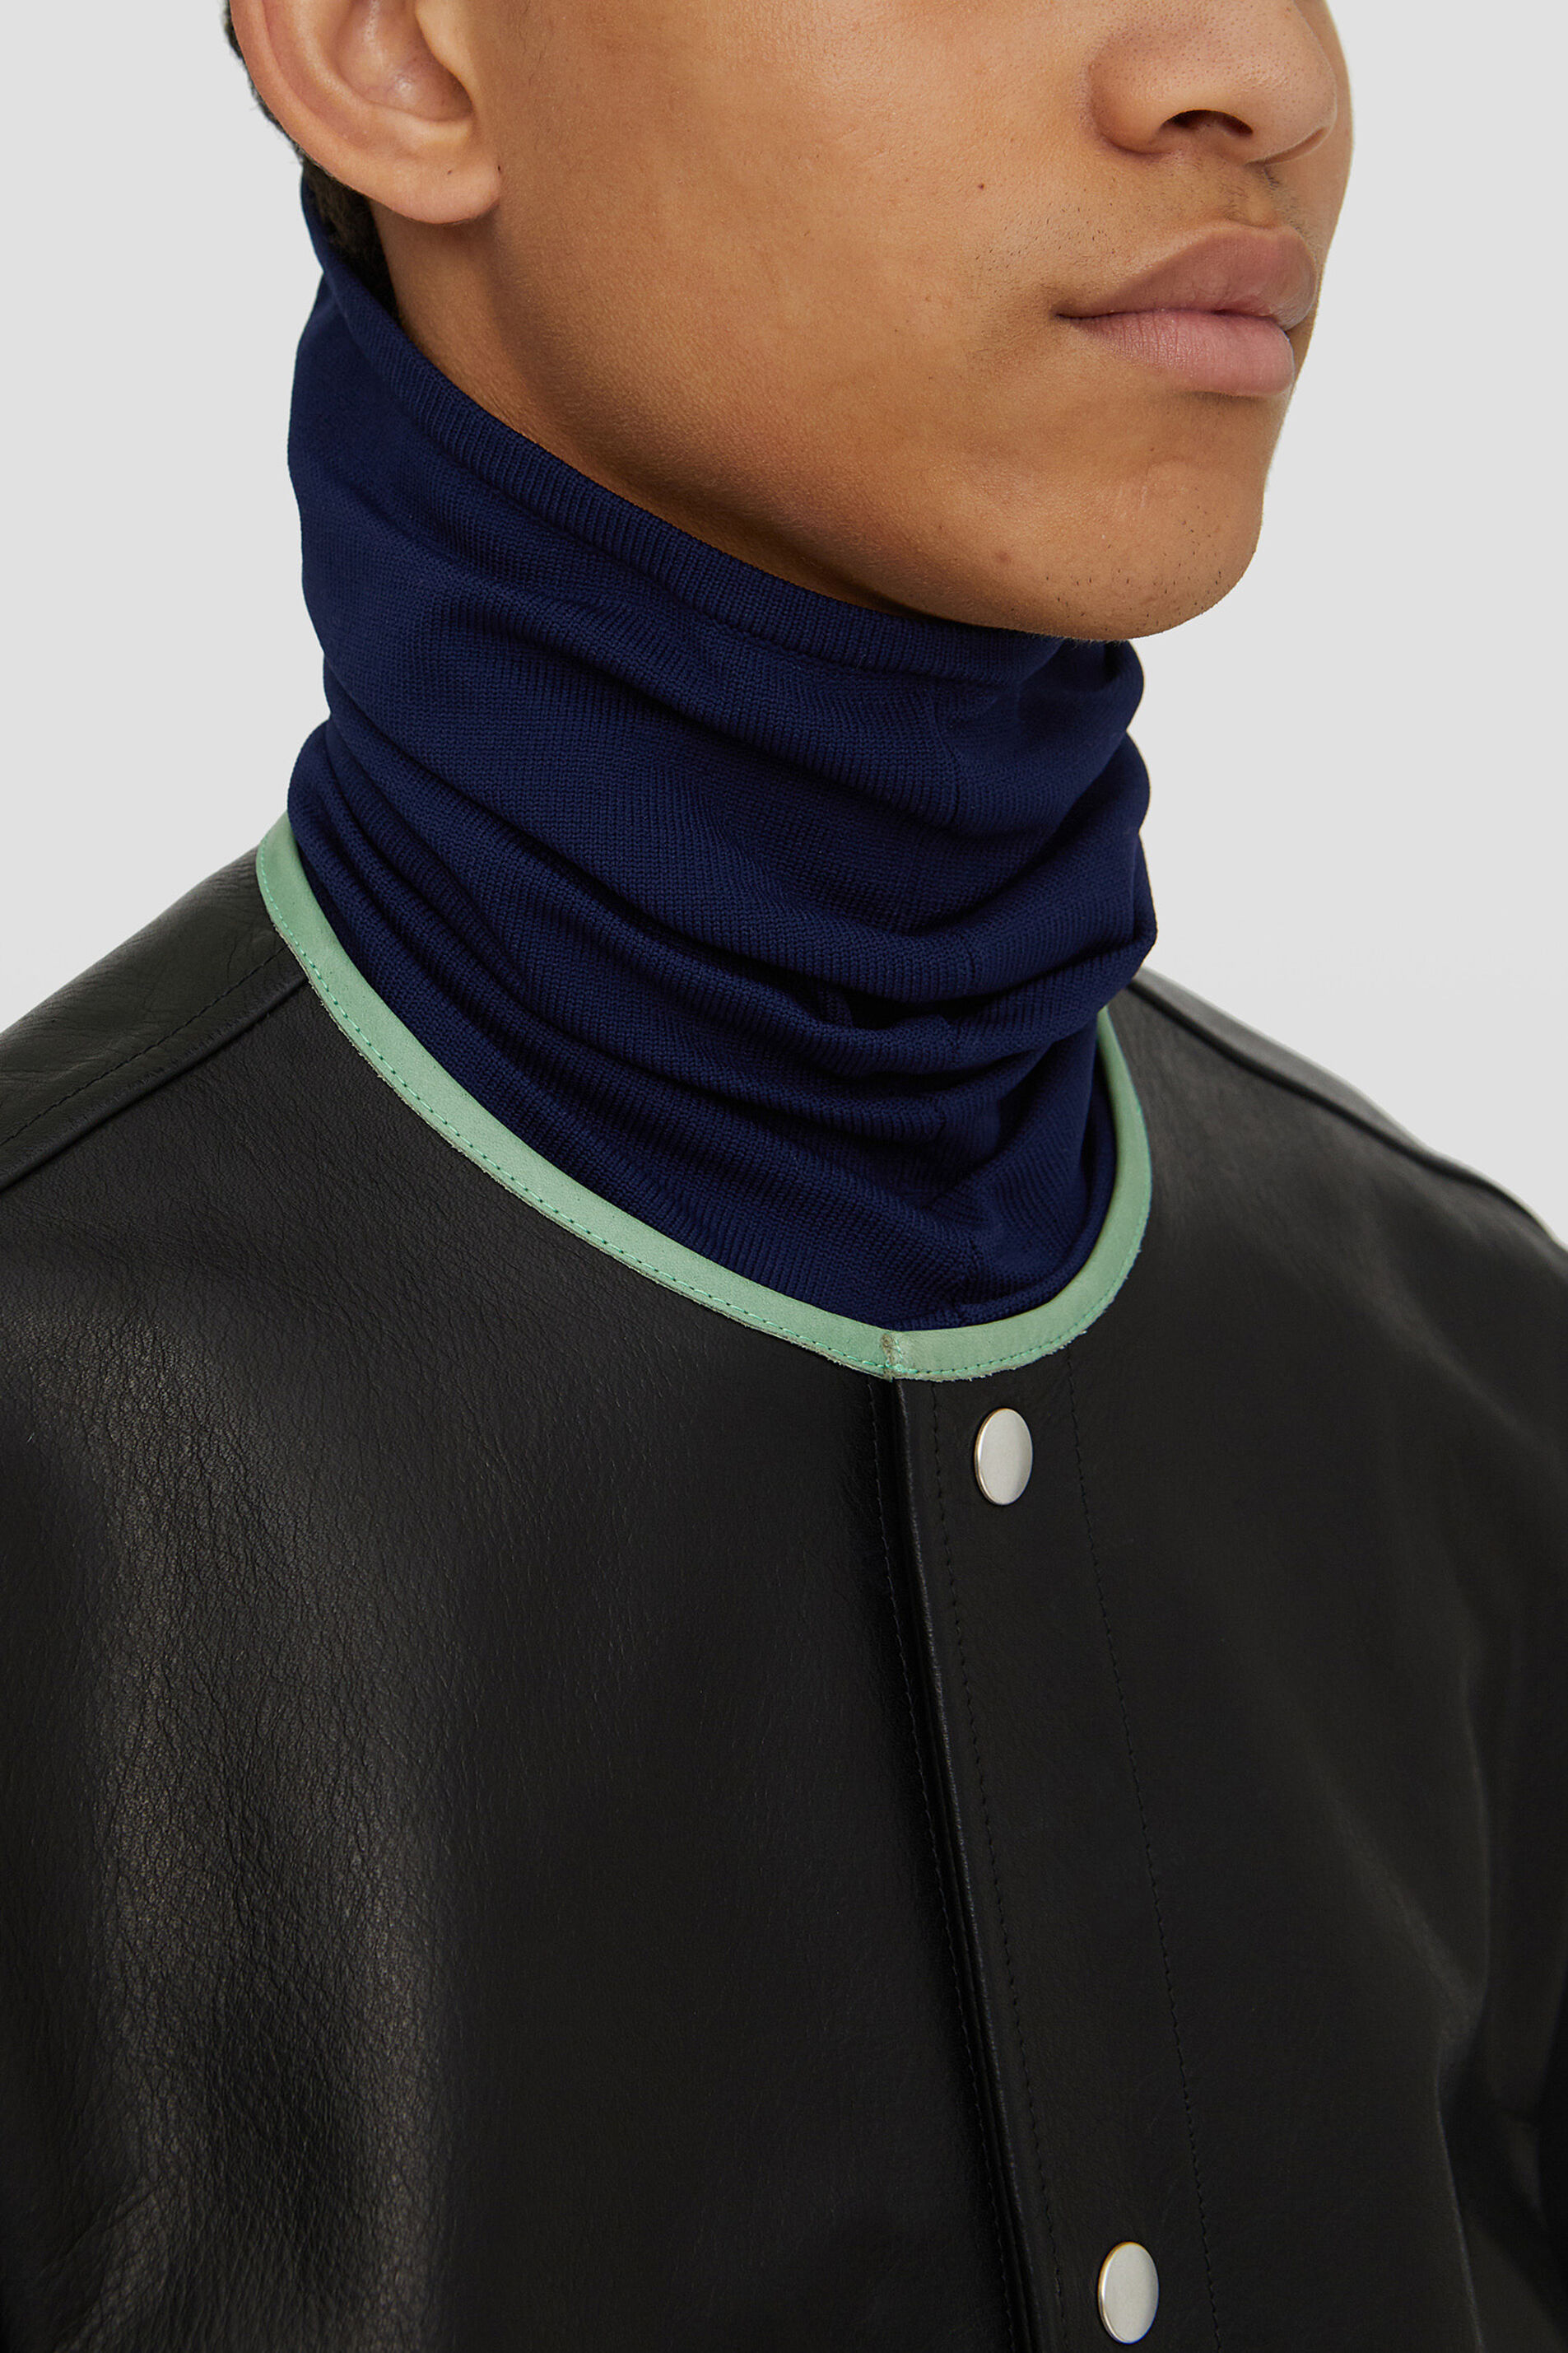 Collar, dark blue, large